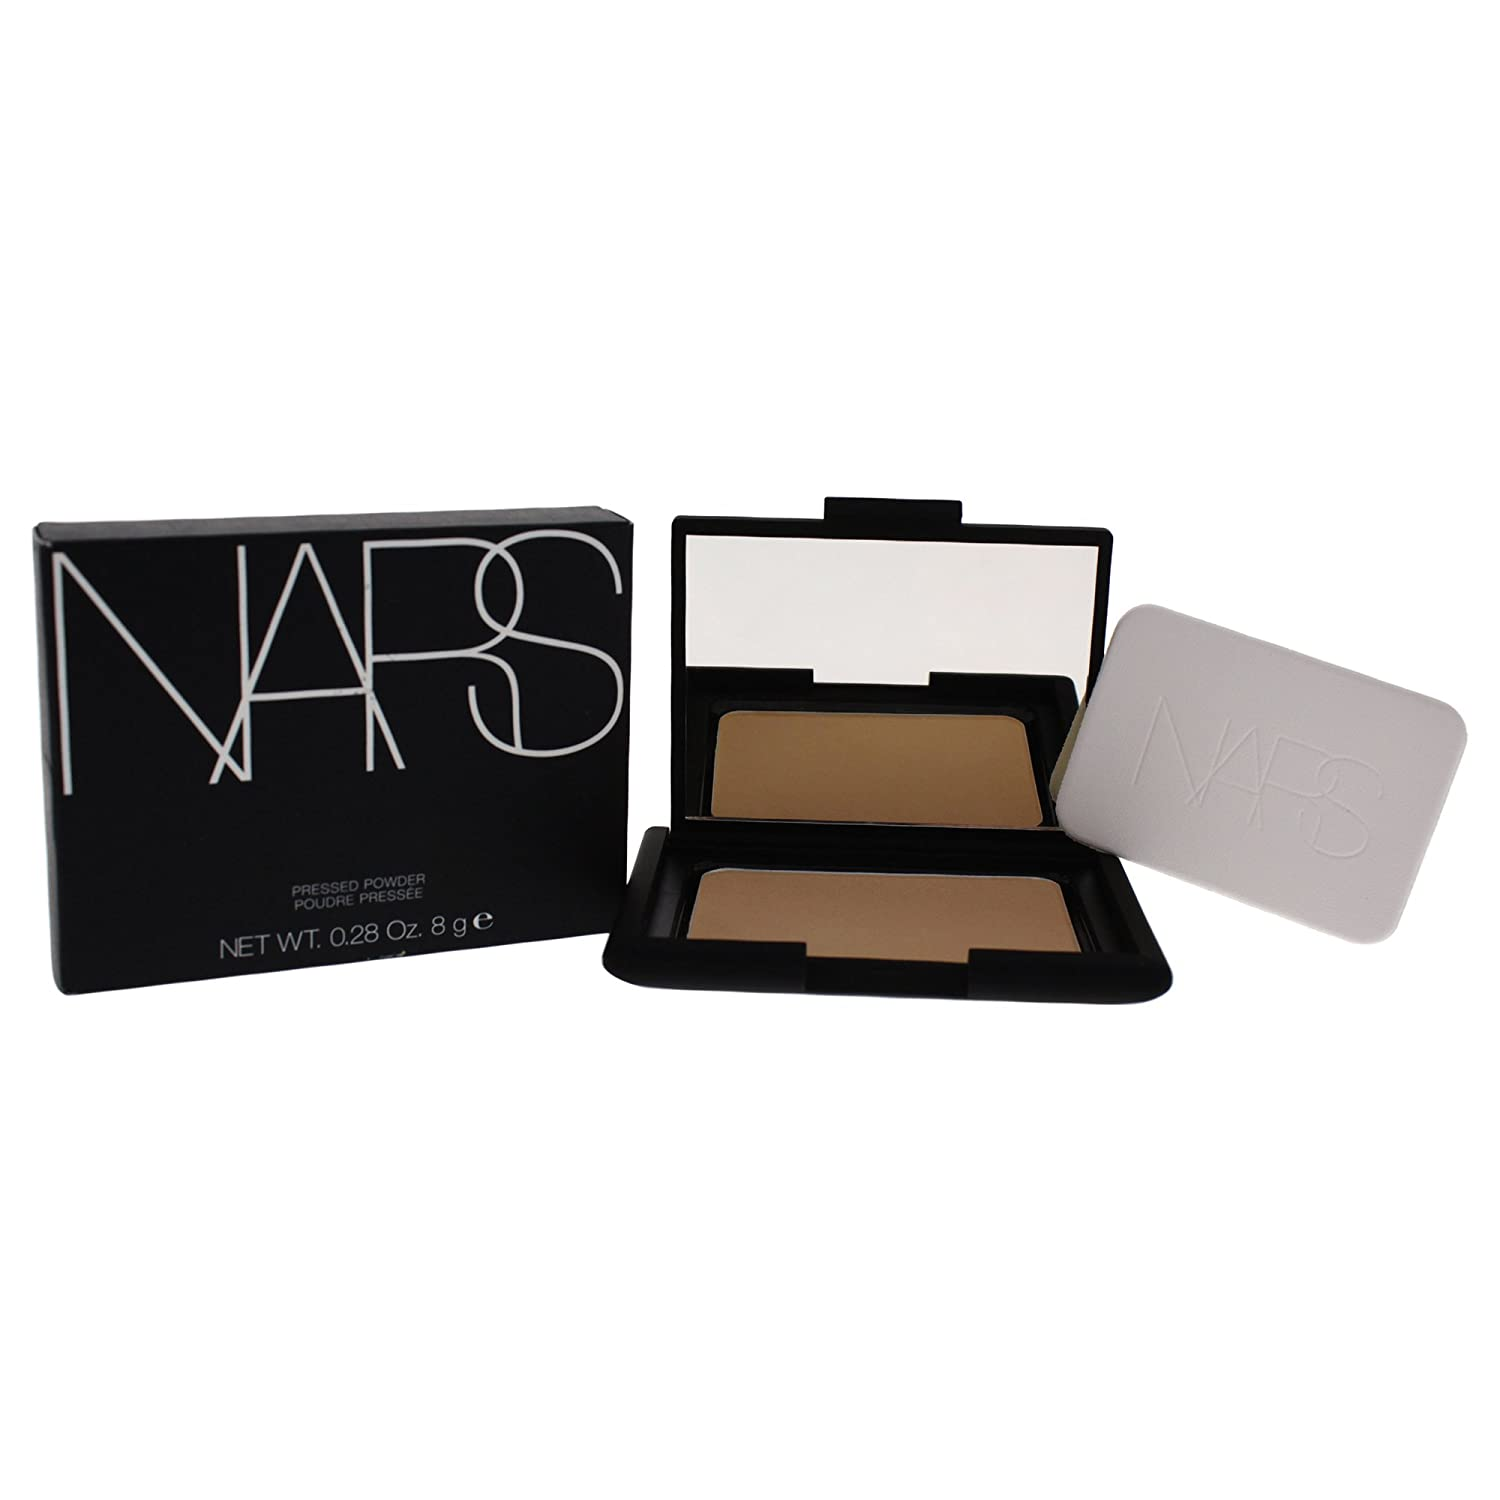 B00021DJZK NARS Pressed Powder, Beach 71I5TpzJ5wL